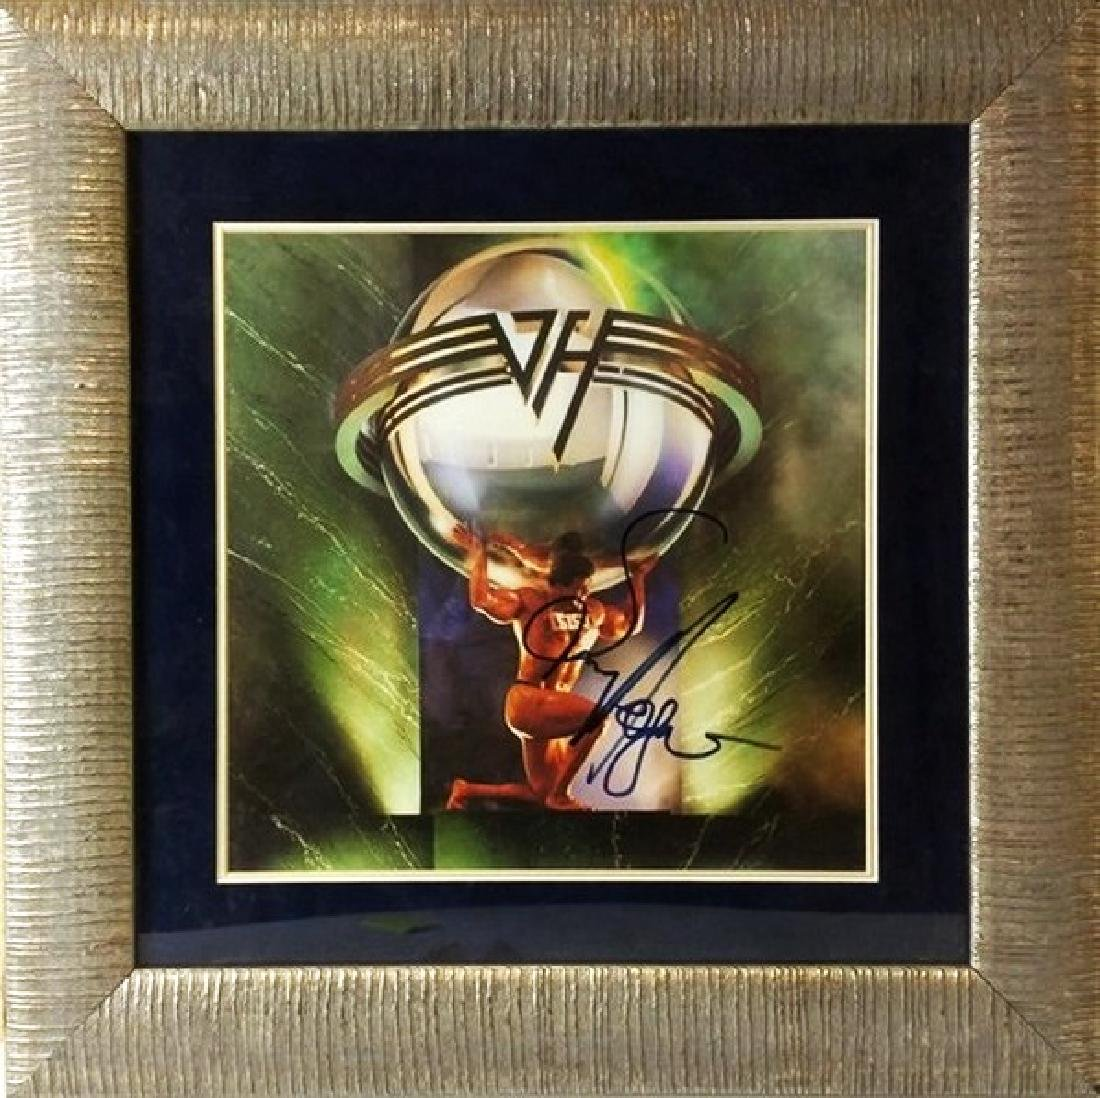 Van Halen  - Signed 5150 Album Cover Photo